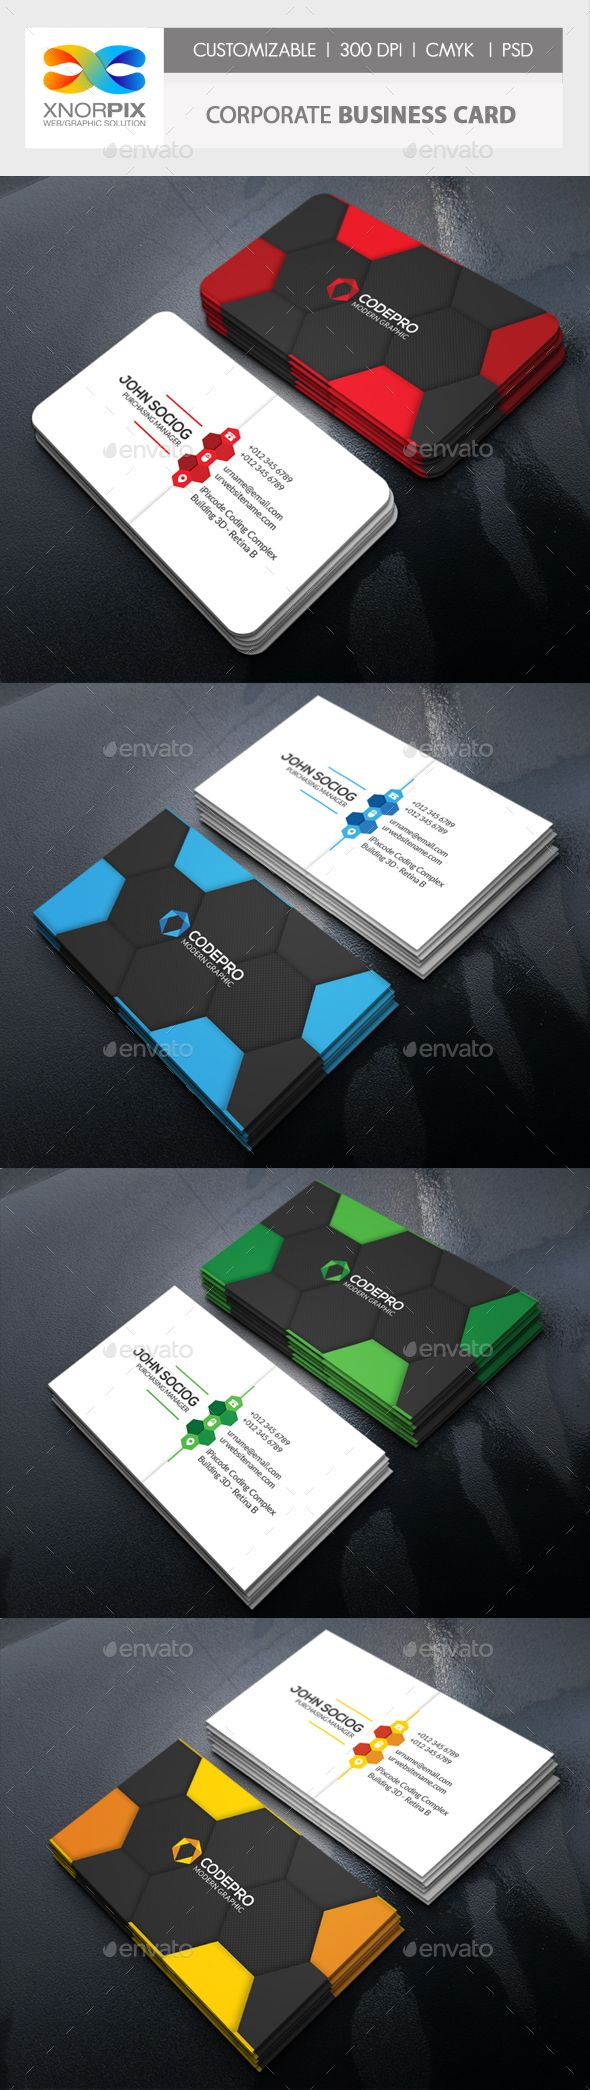 27 best Free Business Card Template PSD images on Pinterest | Free ...